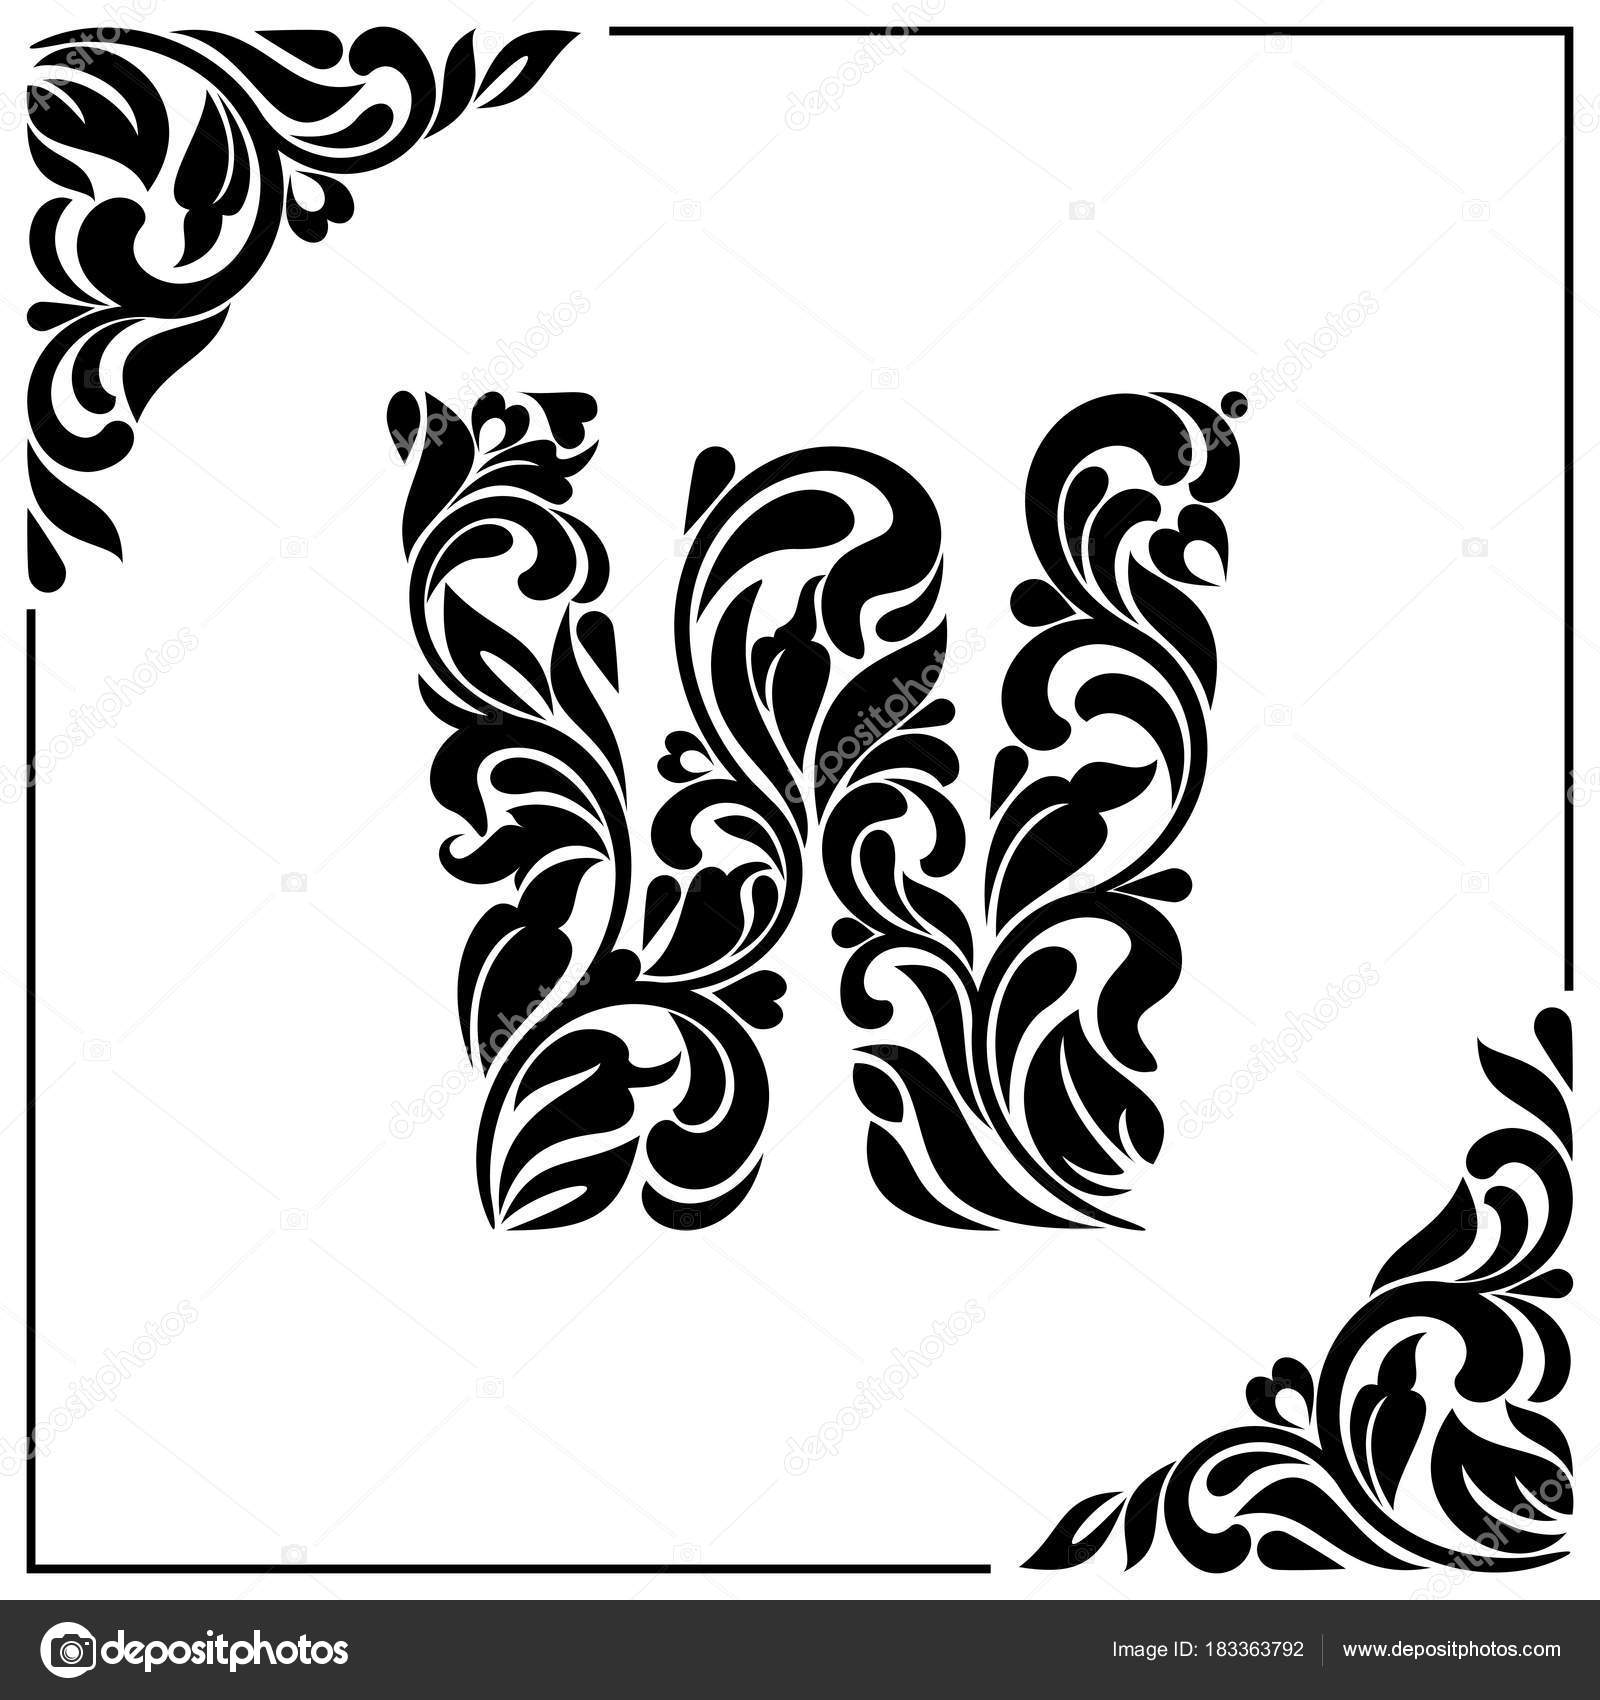 The Letter W Decorative Font With Swirls And Floral Elements Vintage Style Stock